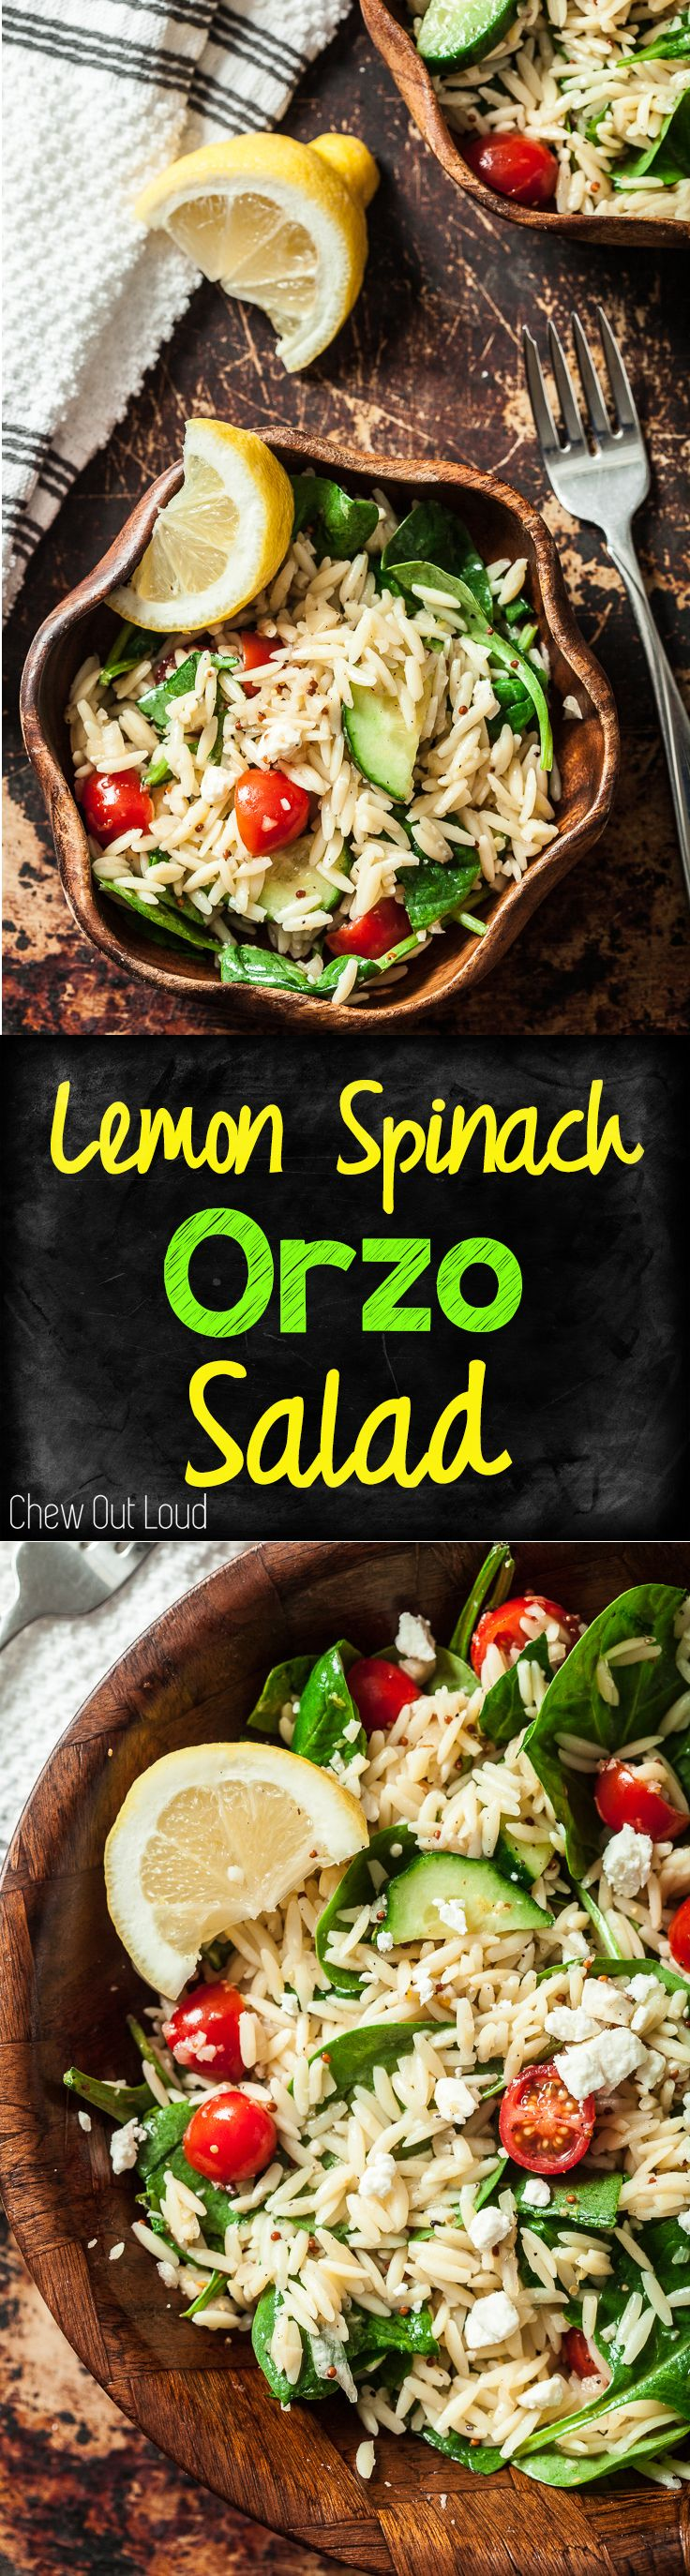 20-Minute Lemon Spinach Orzo Salad. It's refreshing, clean and light, yet fully satisfying. Deeelish. The family gobbles this up. #lemon #spinach #orzo #salad www.chewoutloud.com